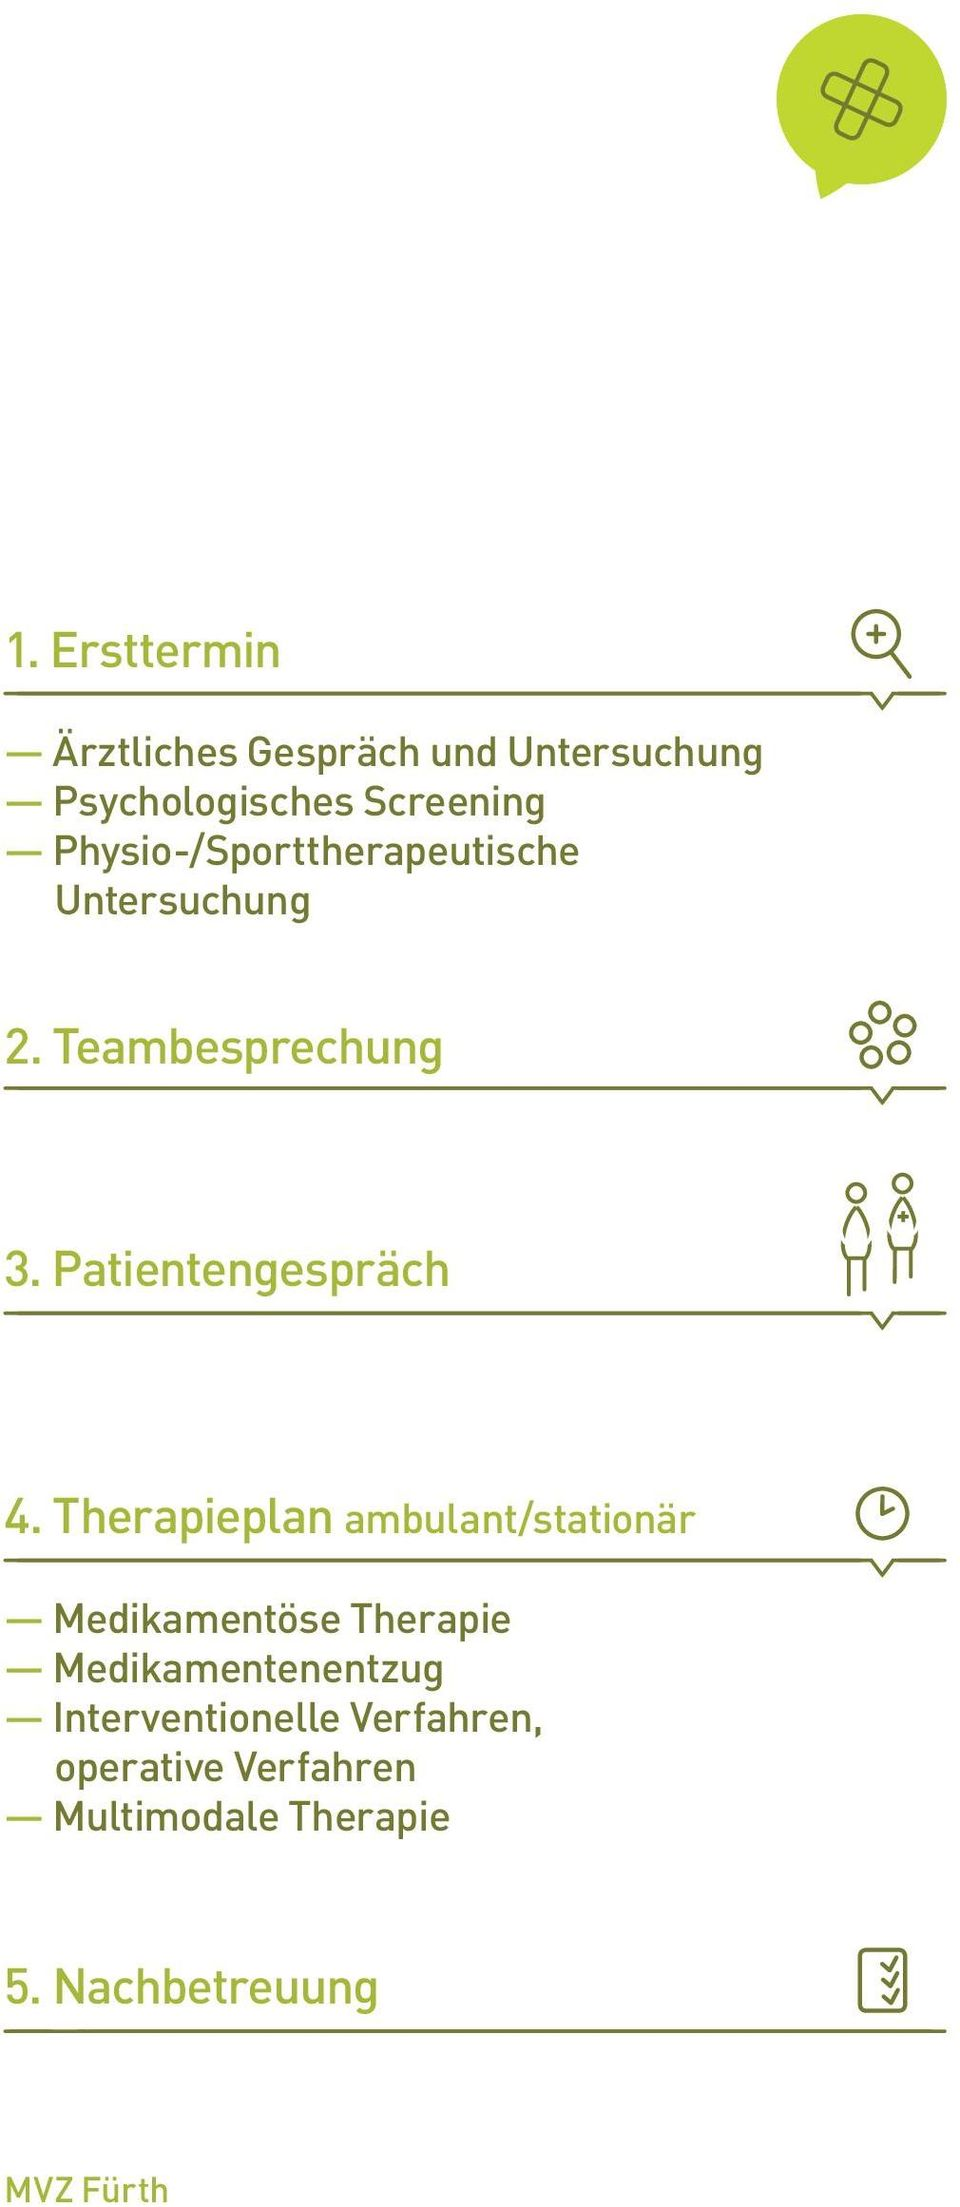 Therapieplan ambulant/stationär Medikamentöse Therapie Medikamentenentzug